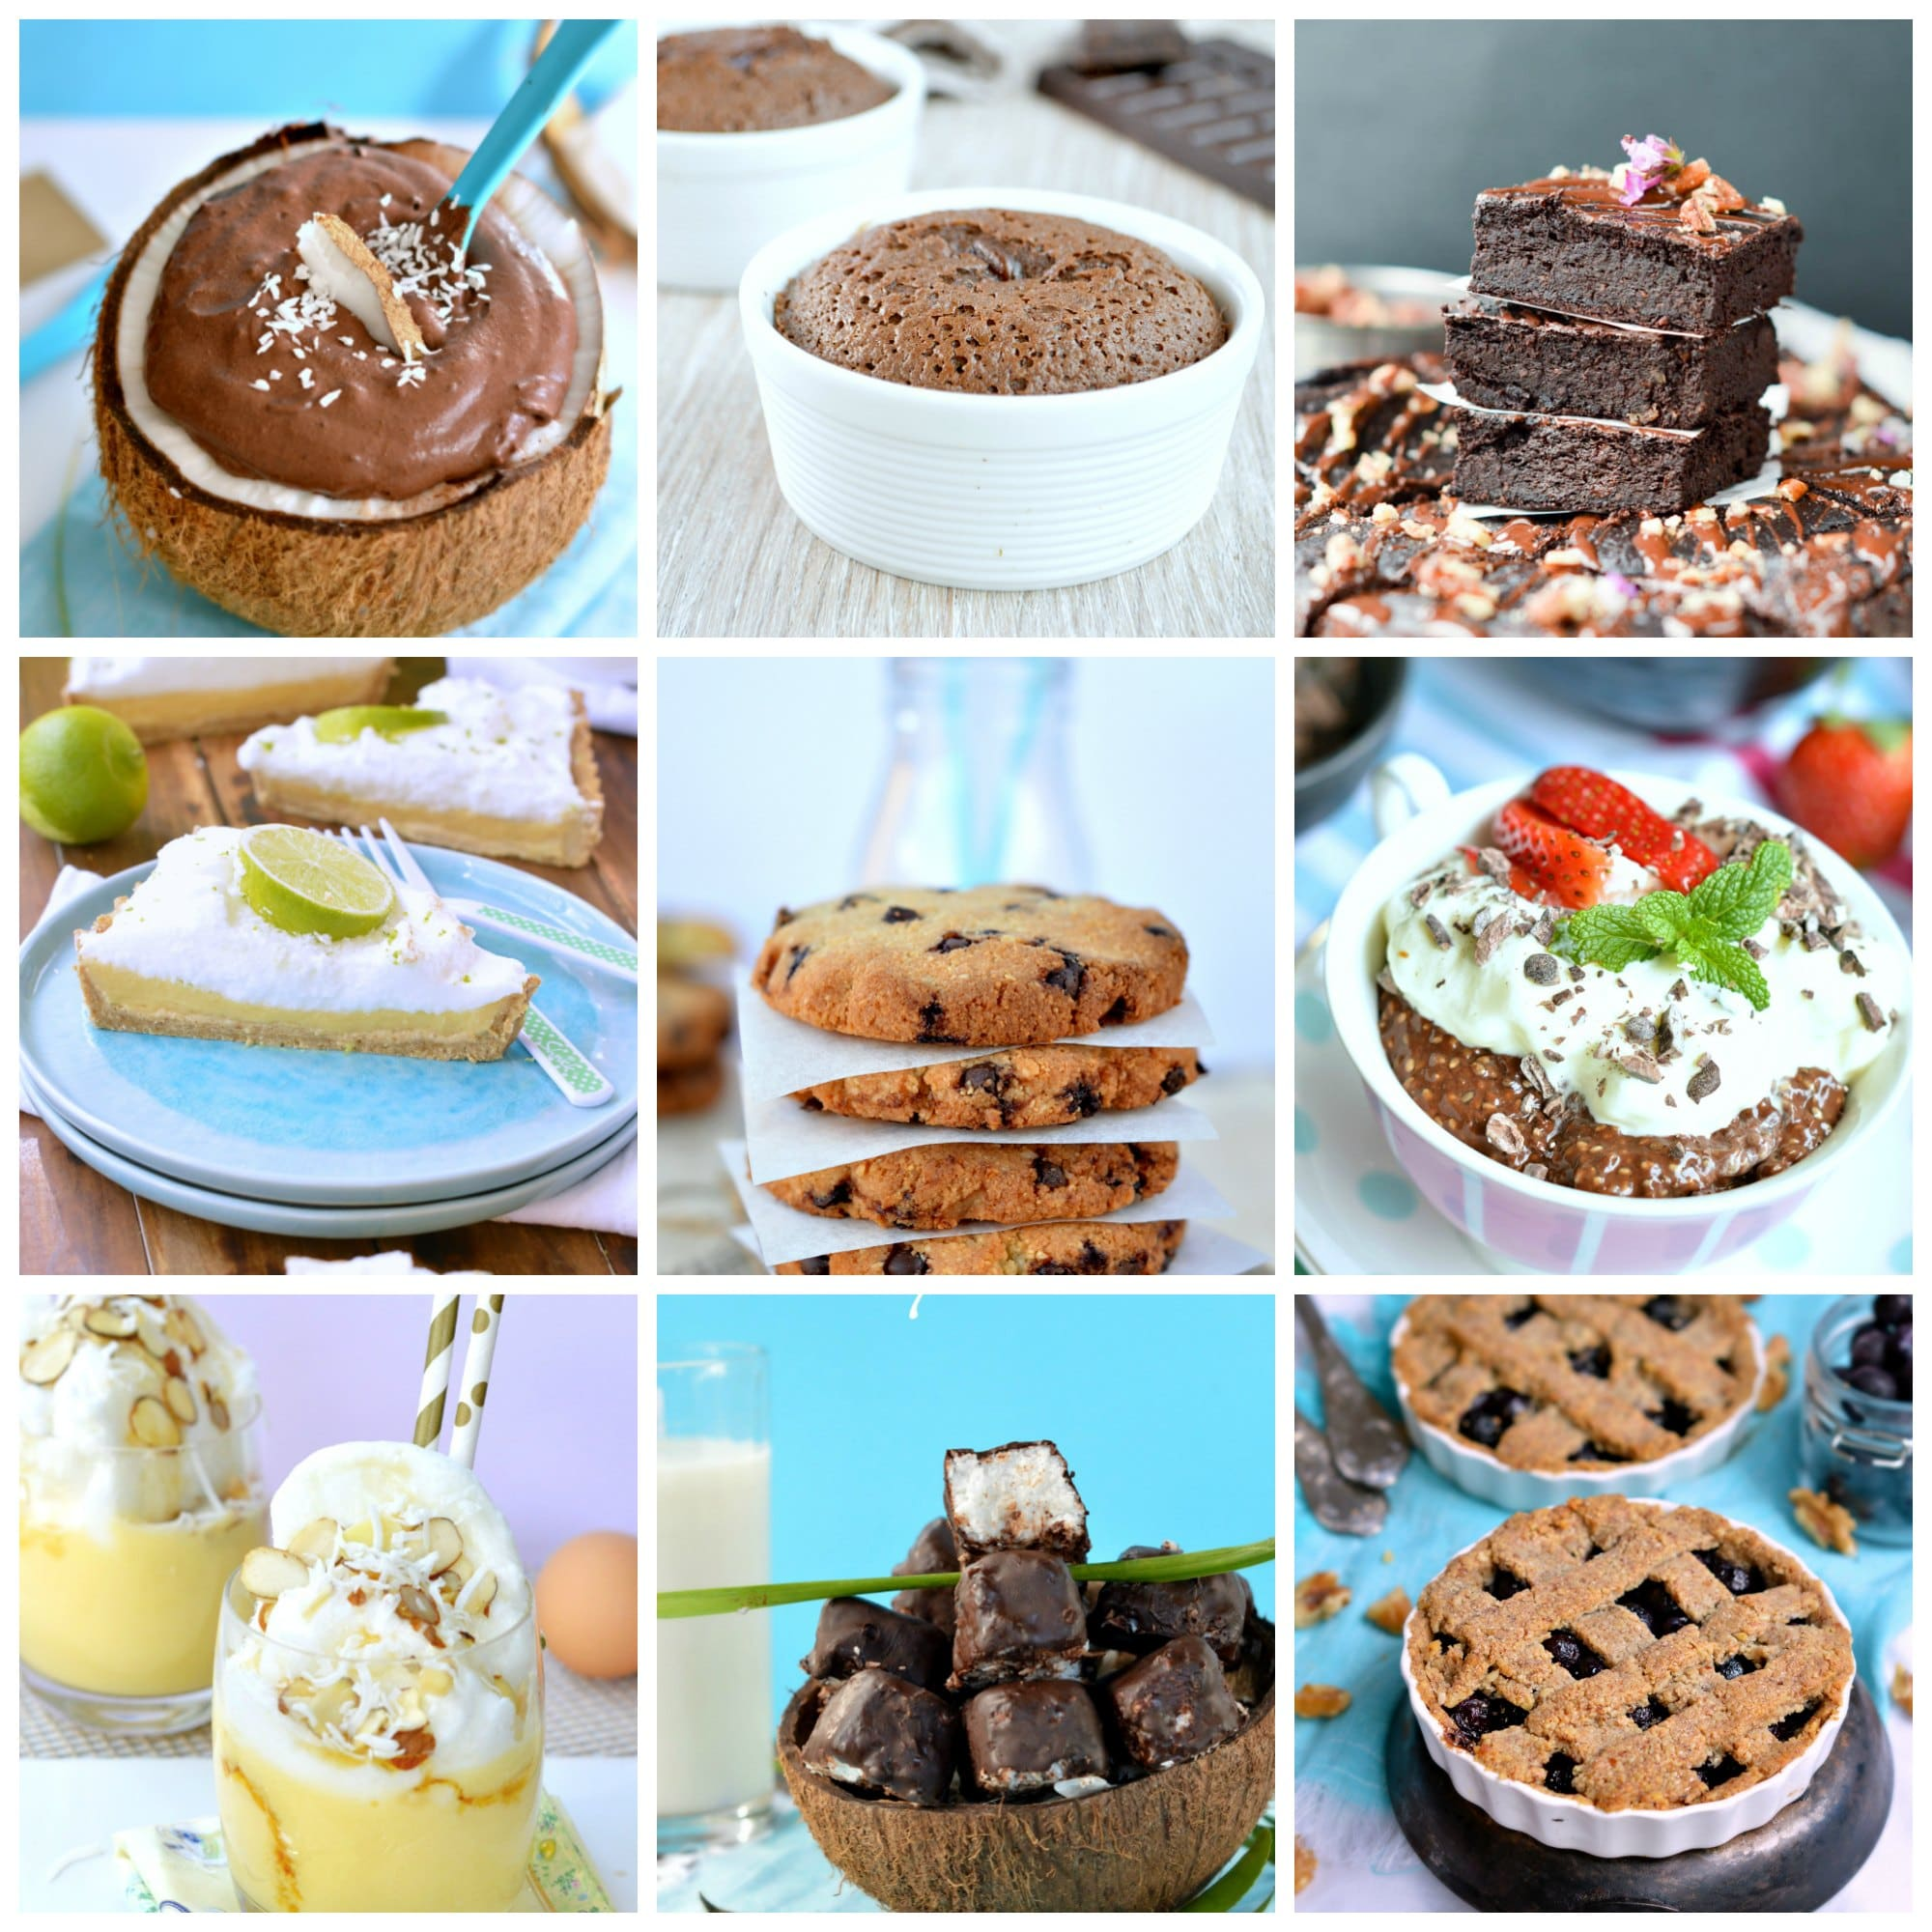 10 Sugar Free Desserts for diabetics Sweetashoney